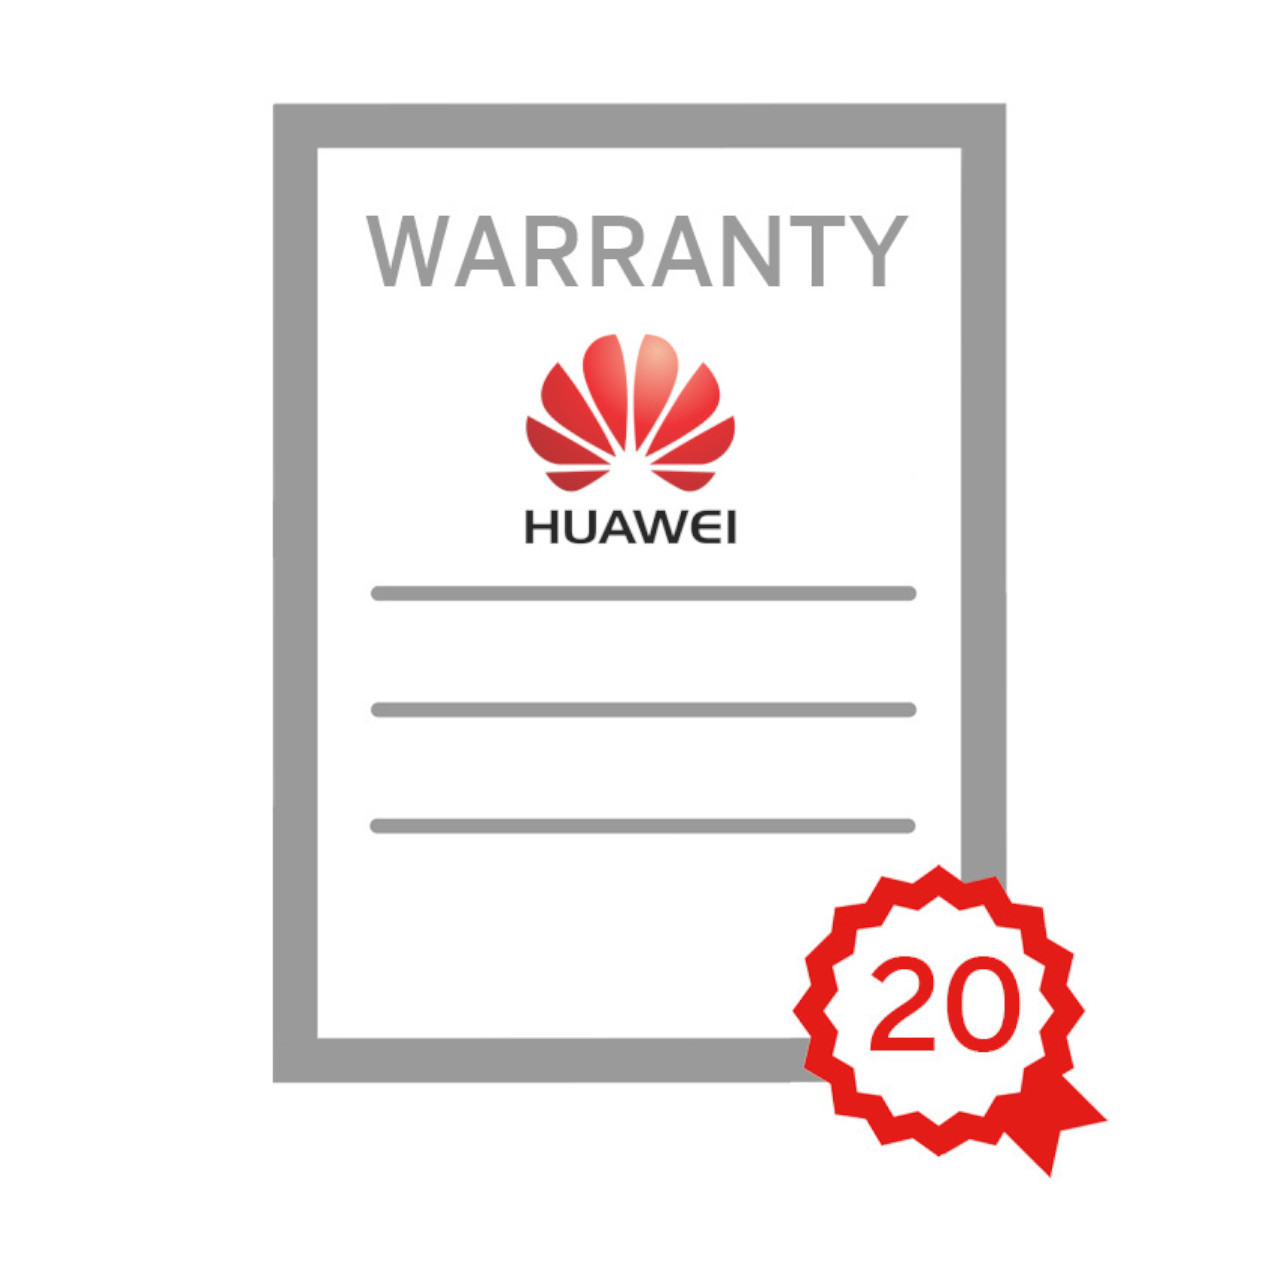 Huawei - 5KTL Warranty Extension to 20yrs